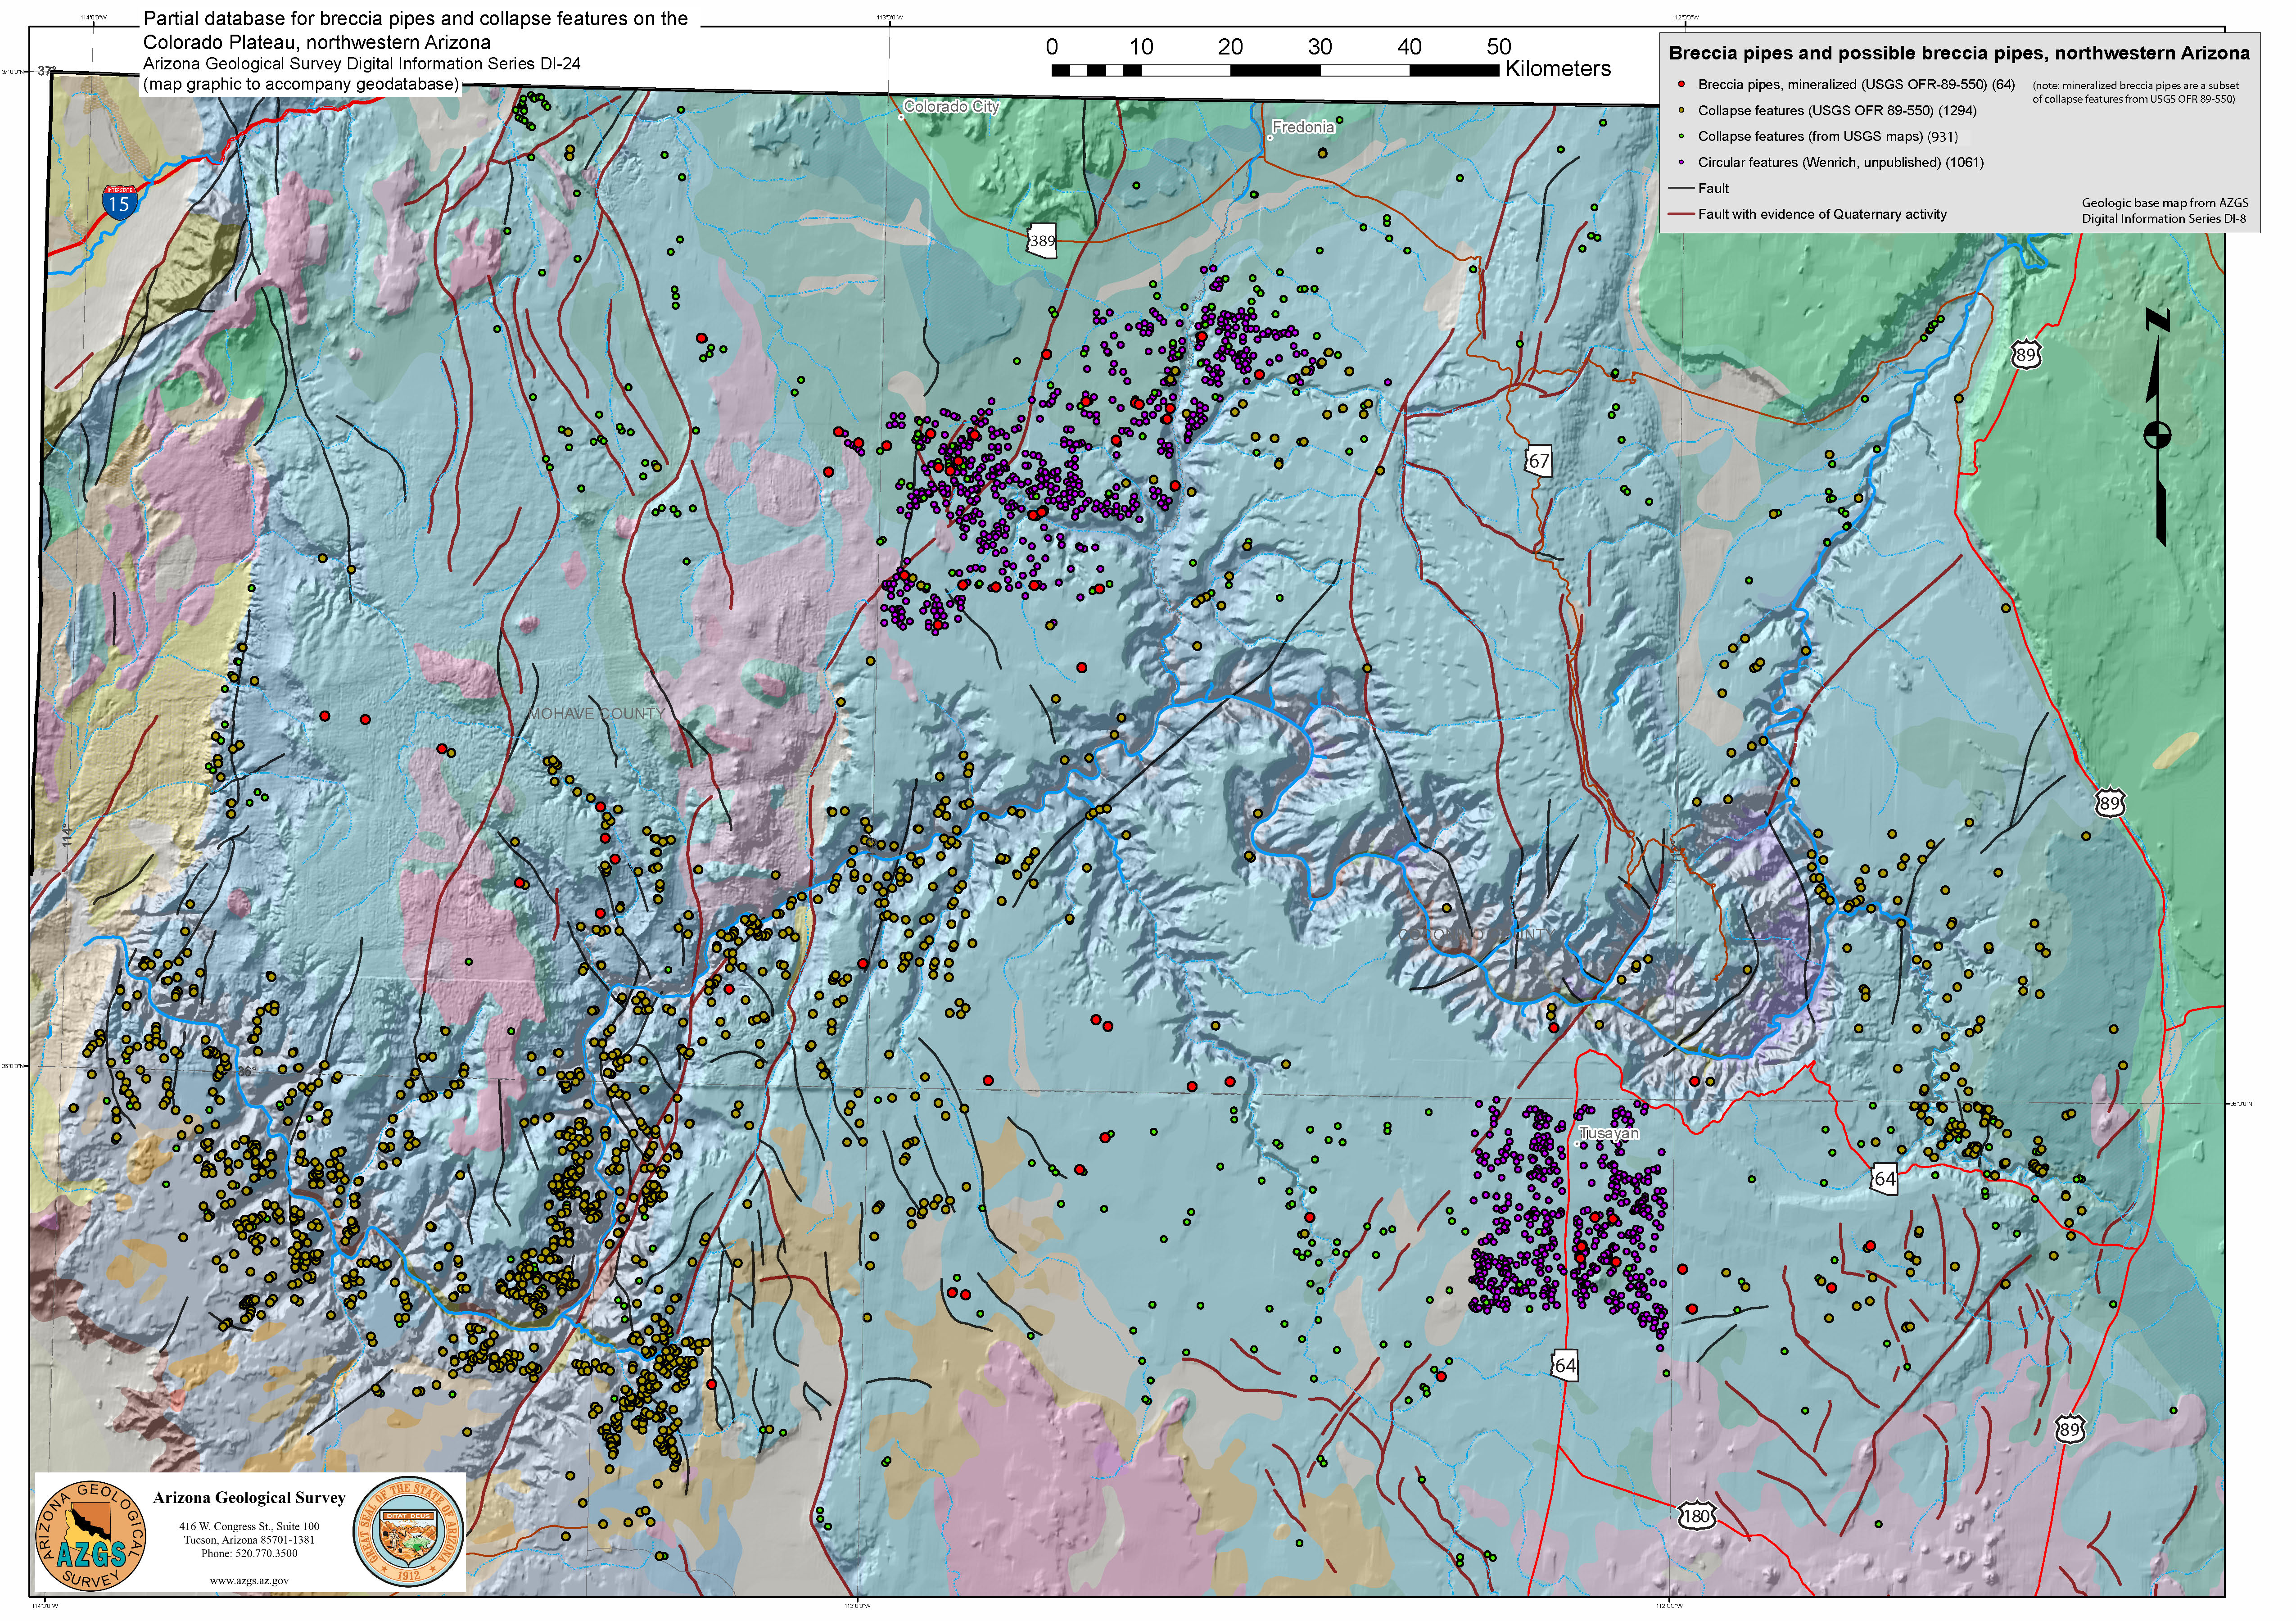 Partial Database For Breccia Pipes And Collapse Features On The - Map of colorado plateau region